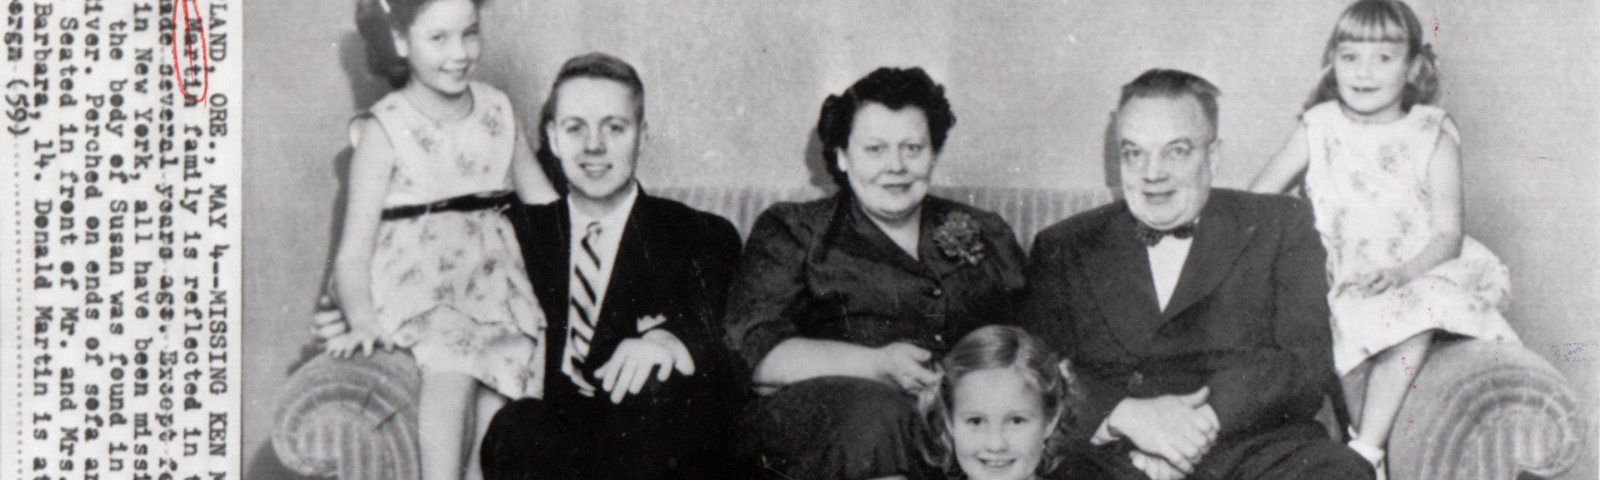 The Martin Family's Plunge to Death: Accident or Murder?